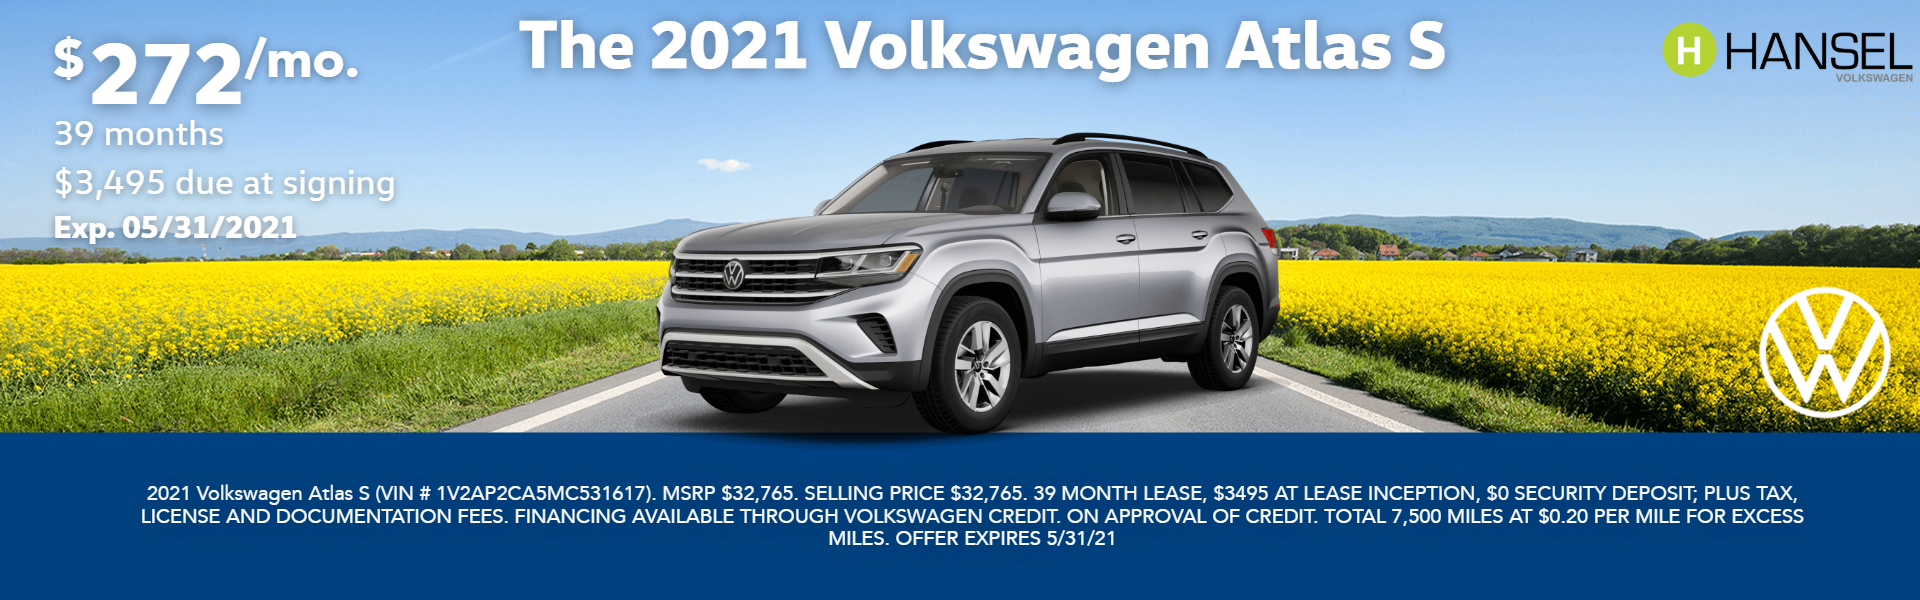 2021_Volkswagen_Atlas_S_Mon May 10 2021 10_52_15 GMT-0700 (Pacific Daylight Time)